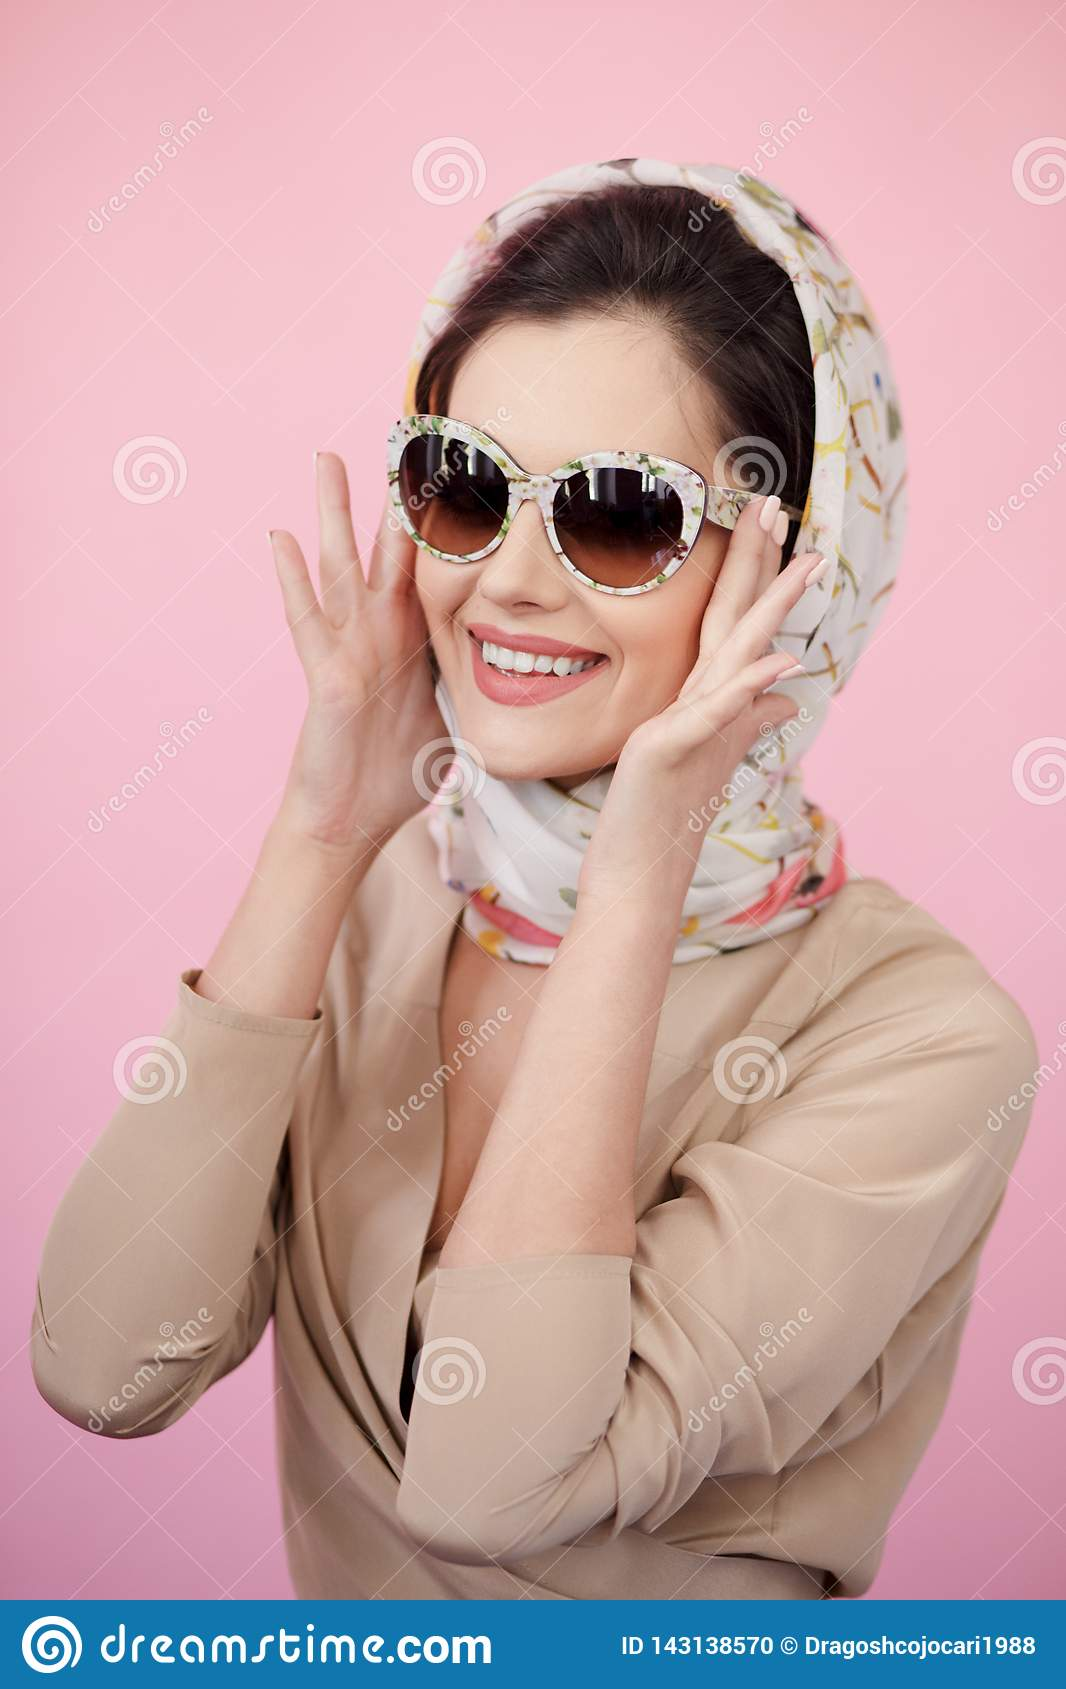 Portrait of a young woman wearing elegant clothes, sunglasses, he touches his glasses with his hands, pink background